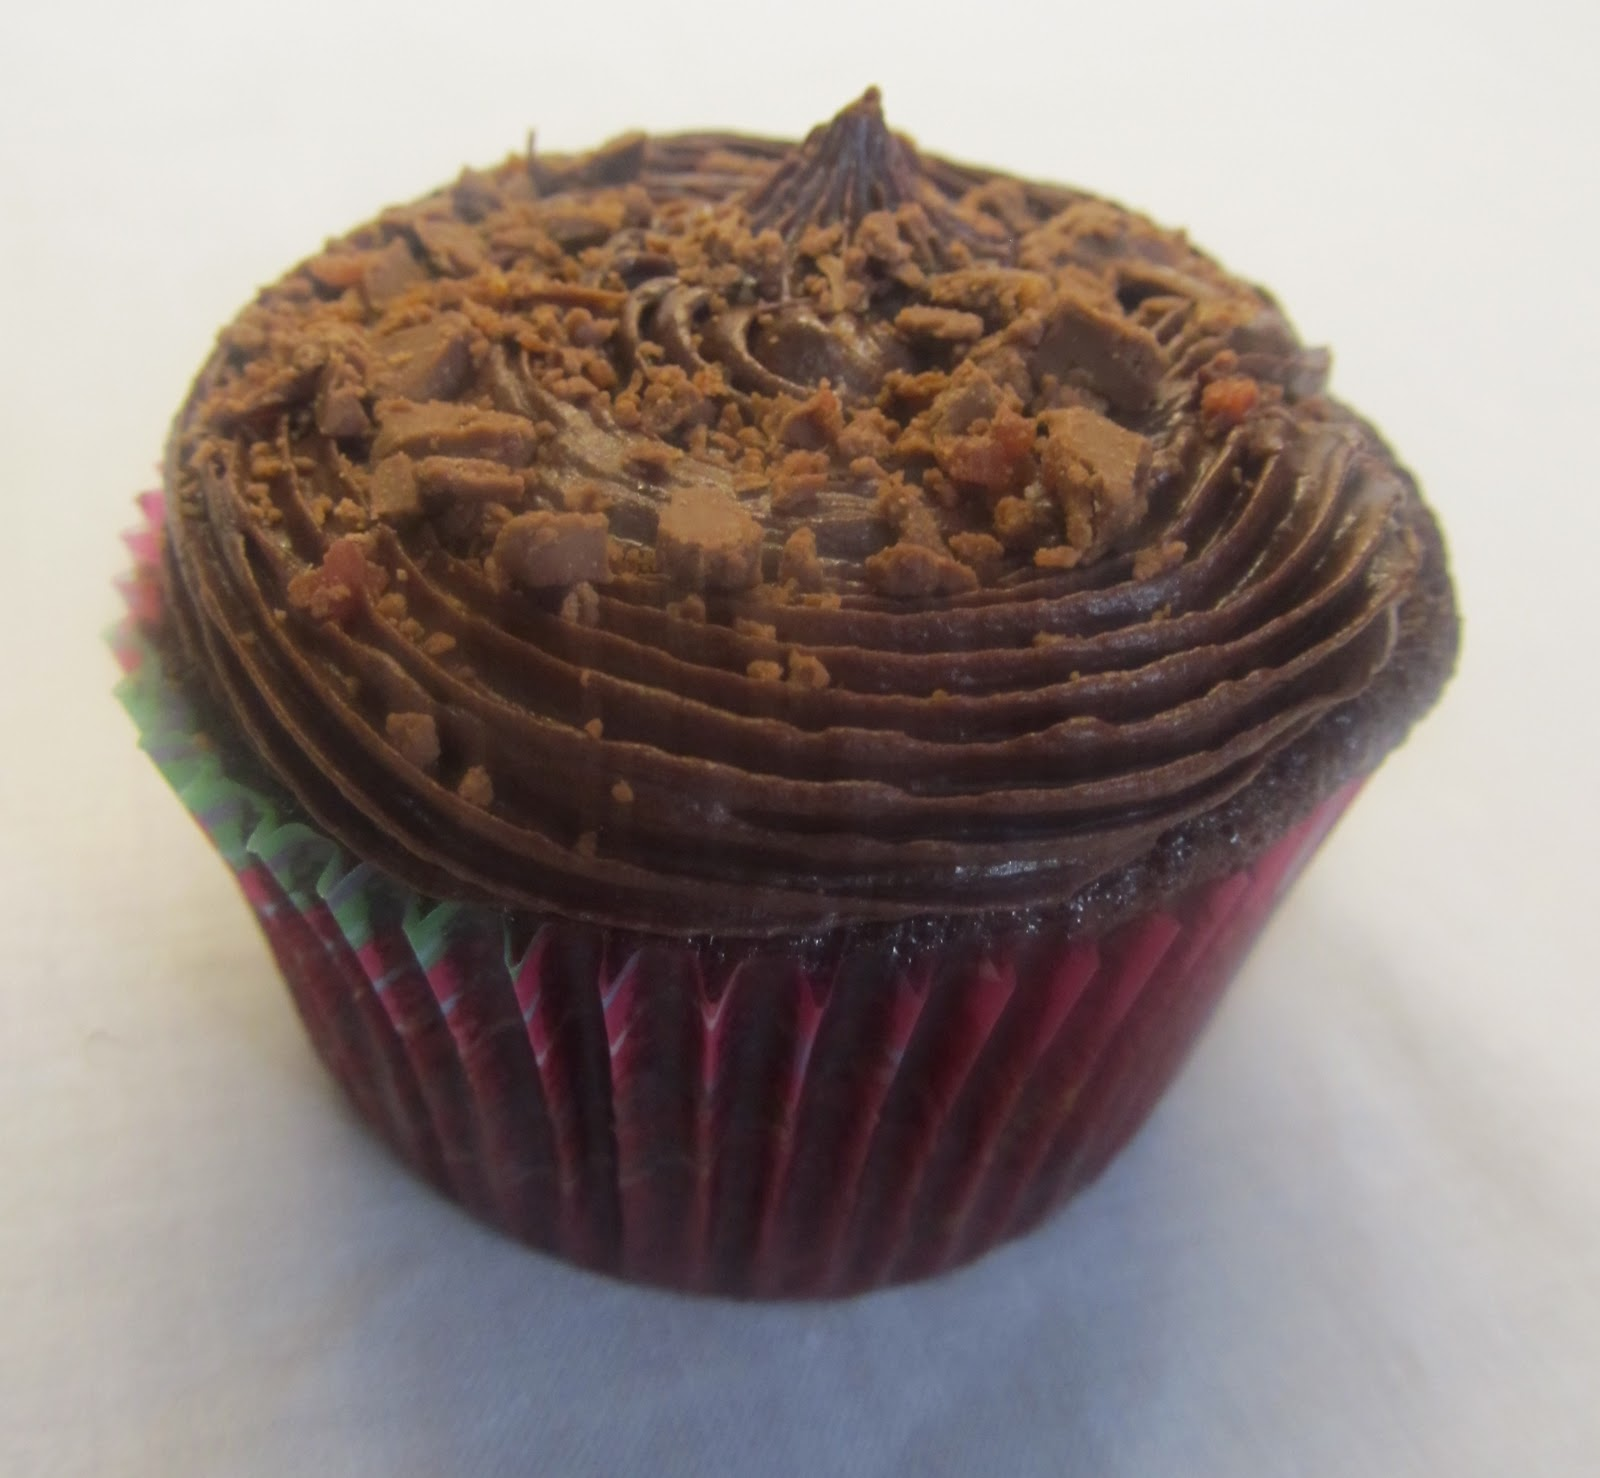 Chocolate Bacon (yes bacon) Cupcakes